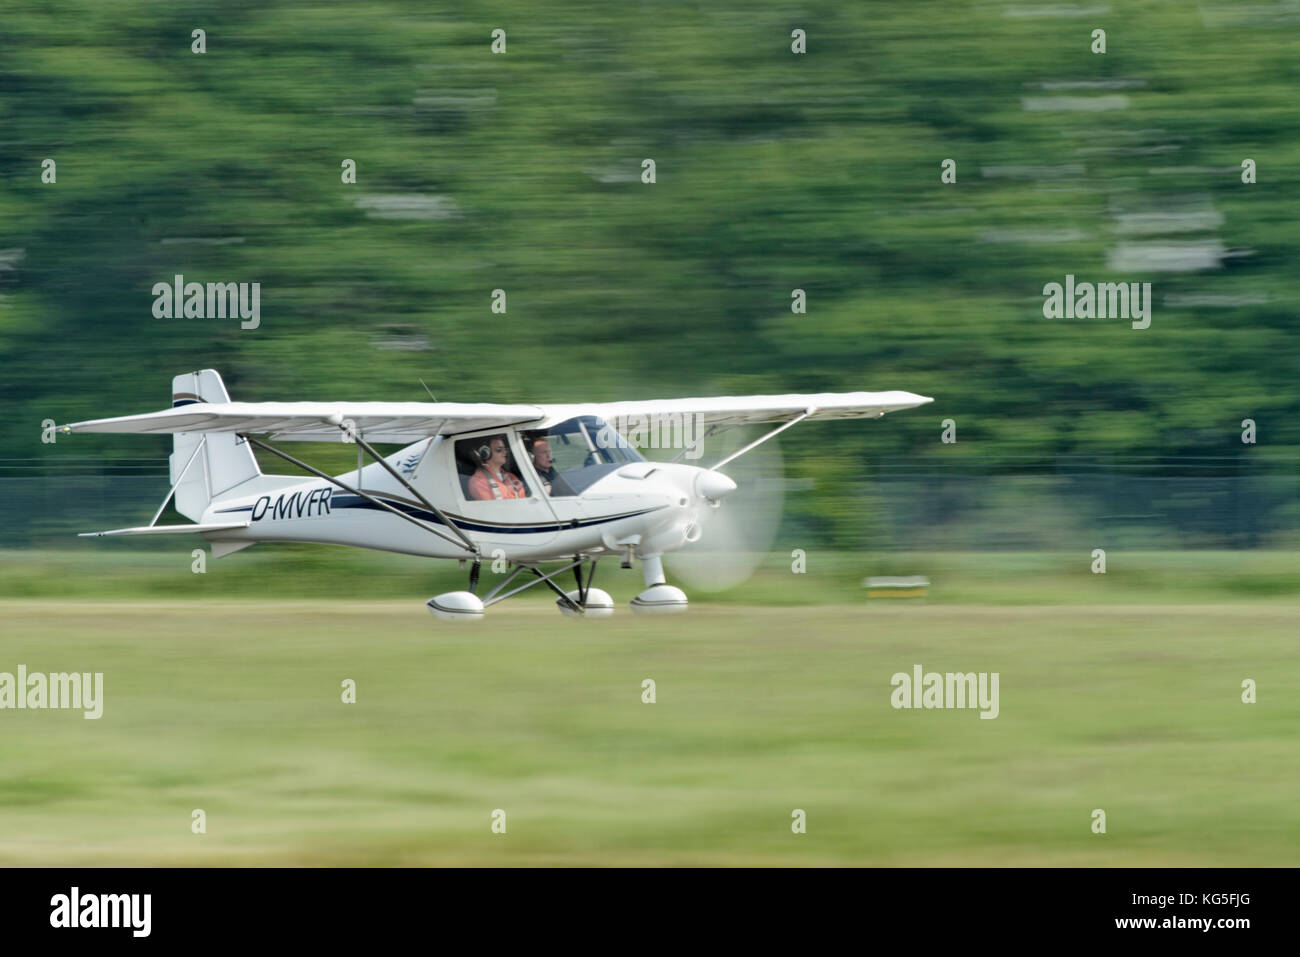 Start of the single-engined aircraft Piper Pa 28-181 on the Flugplatz Loemühle (airport), Marl, North Rhine - Stock Image